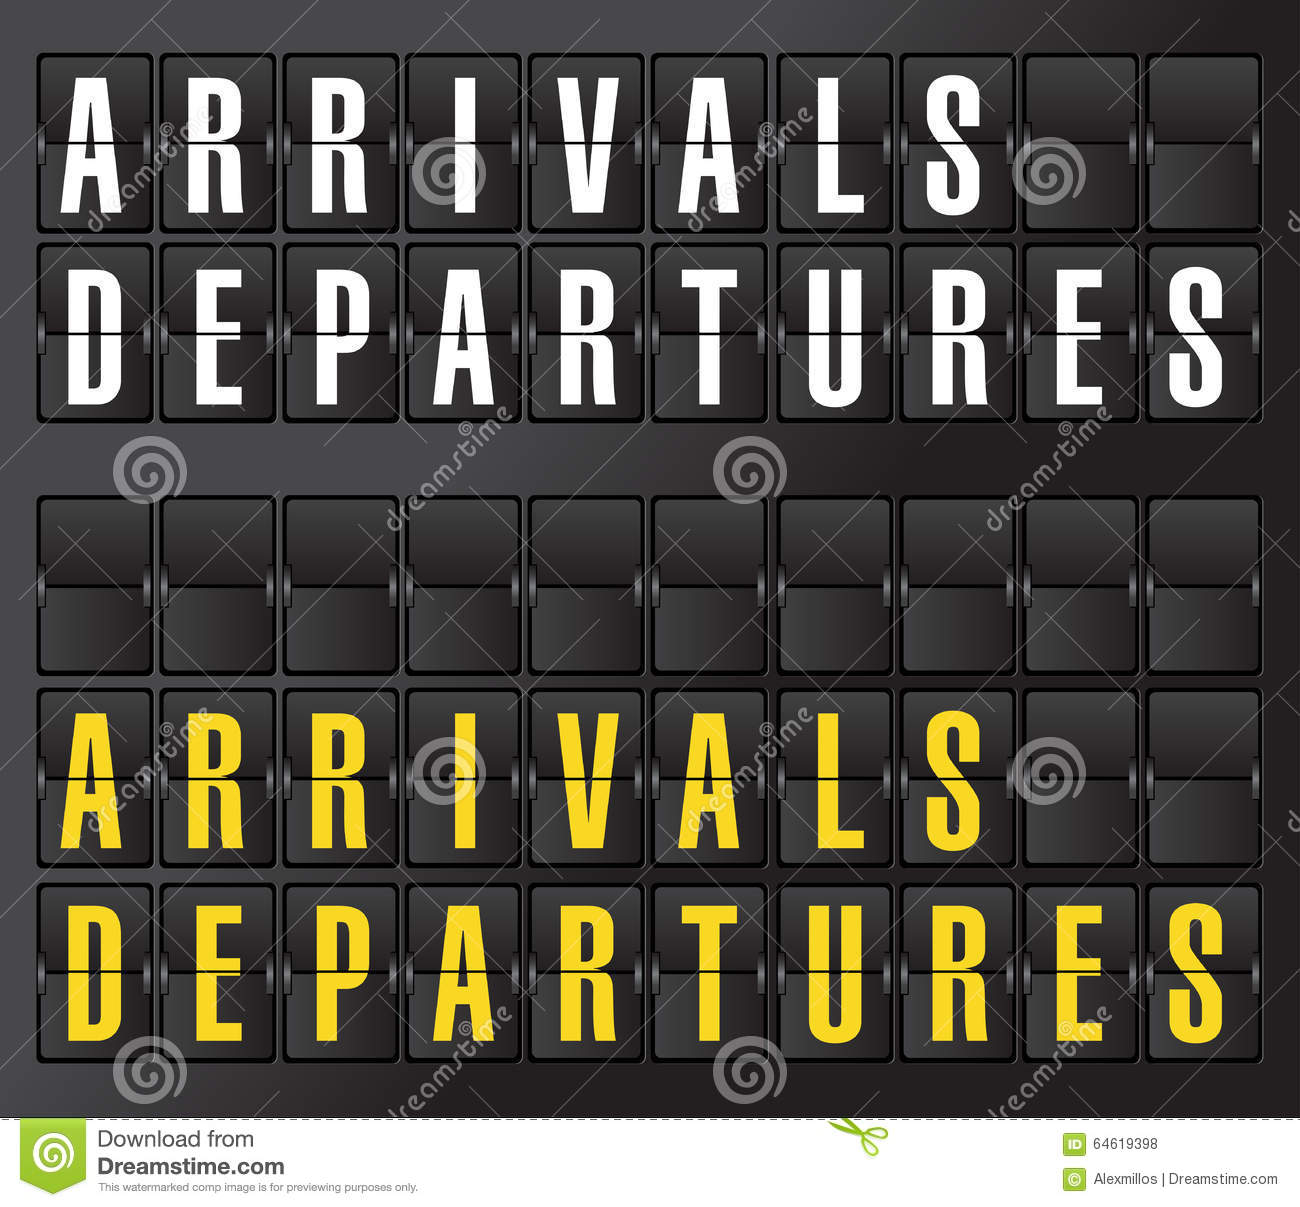 Arrival and departures airport signs in spanish stock - Felpudo arrivals departures ...